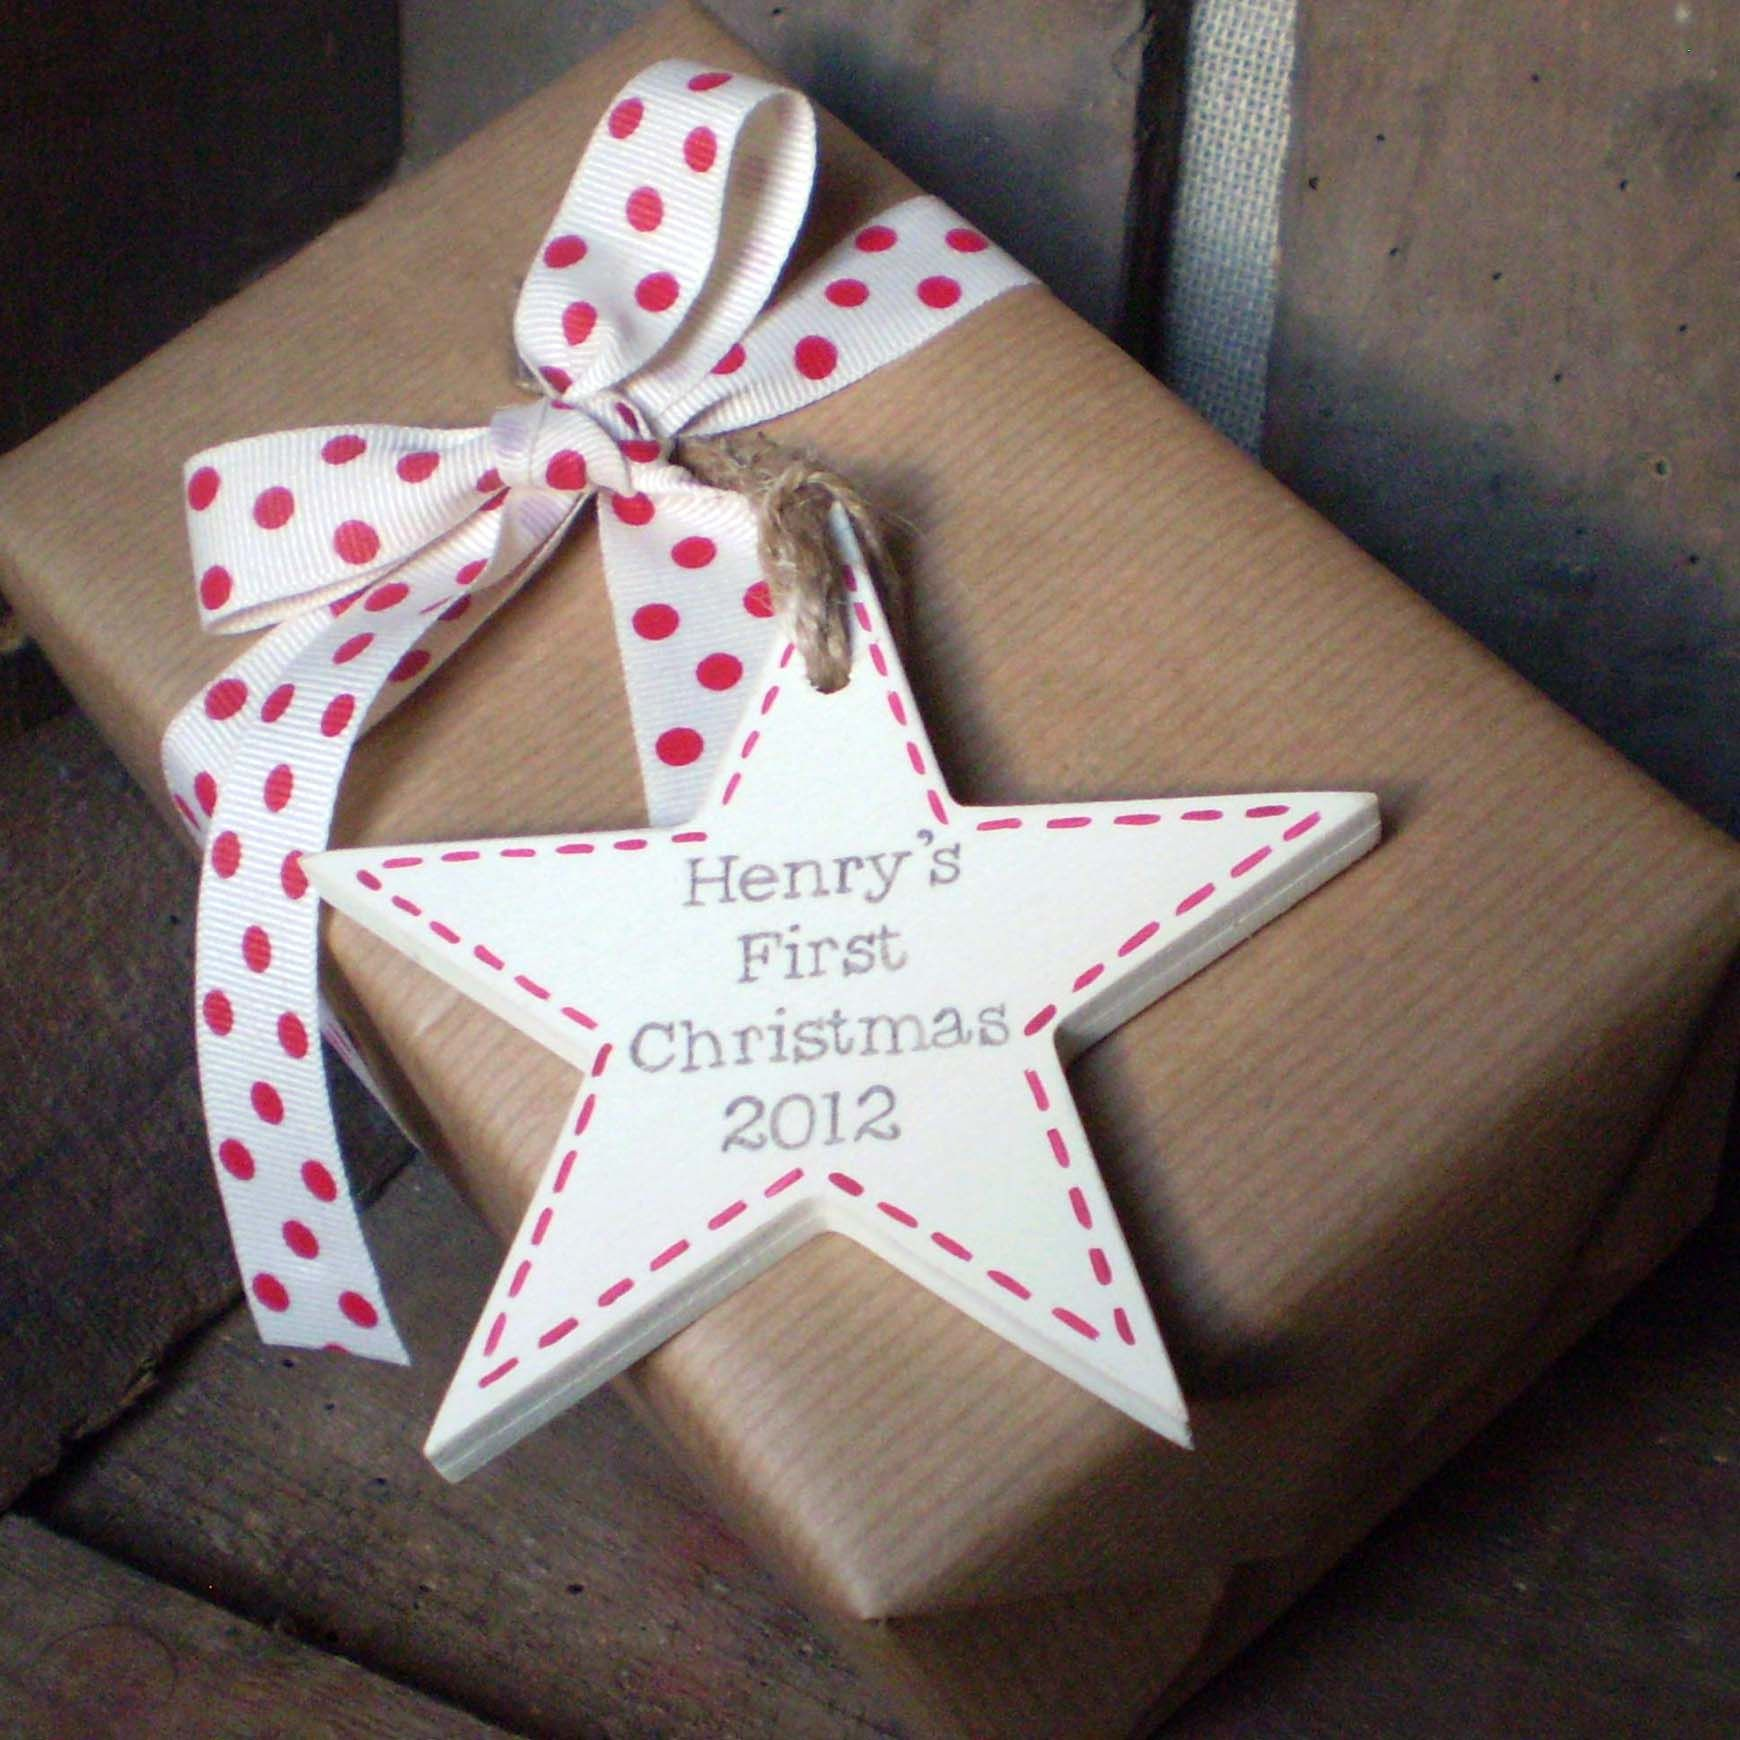 5 inventive Christmas gift wrapping ideas | What I Always Wanted ...